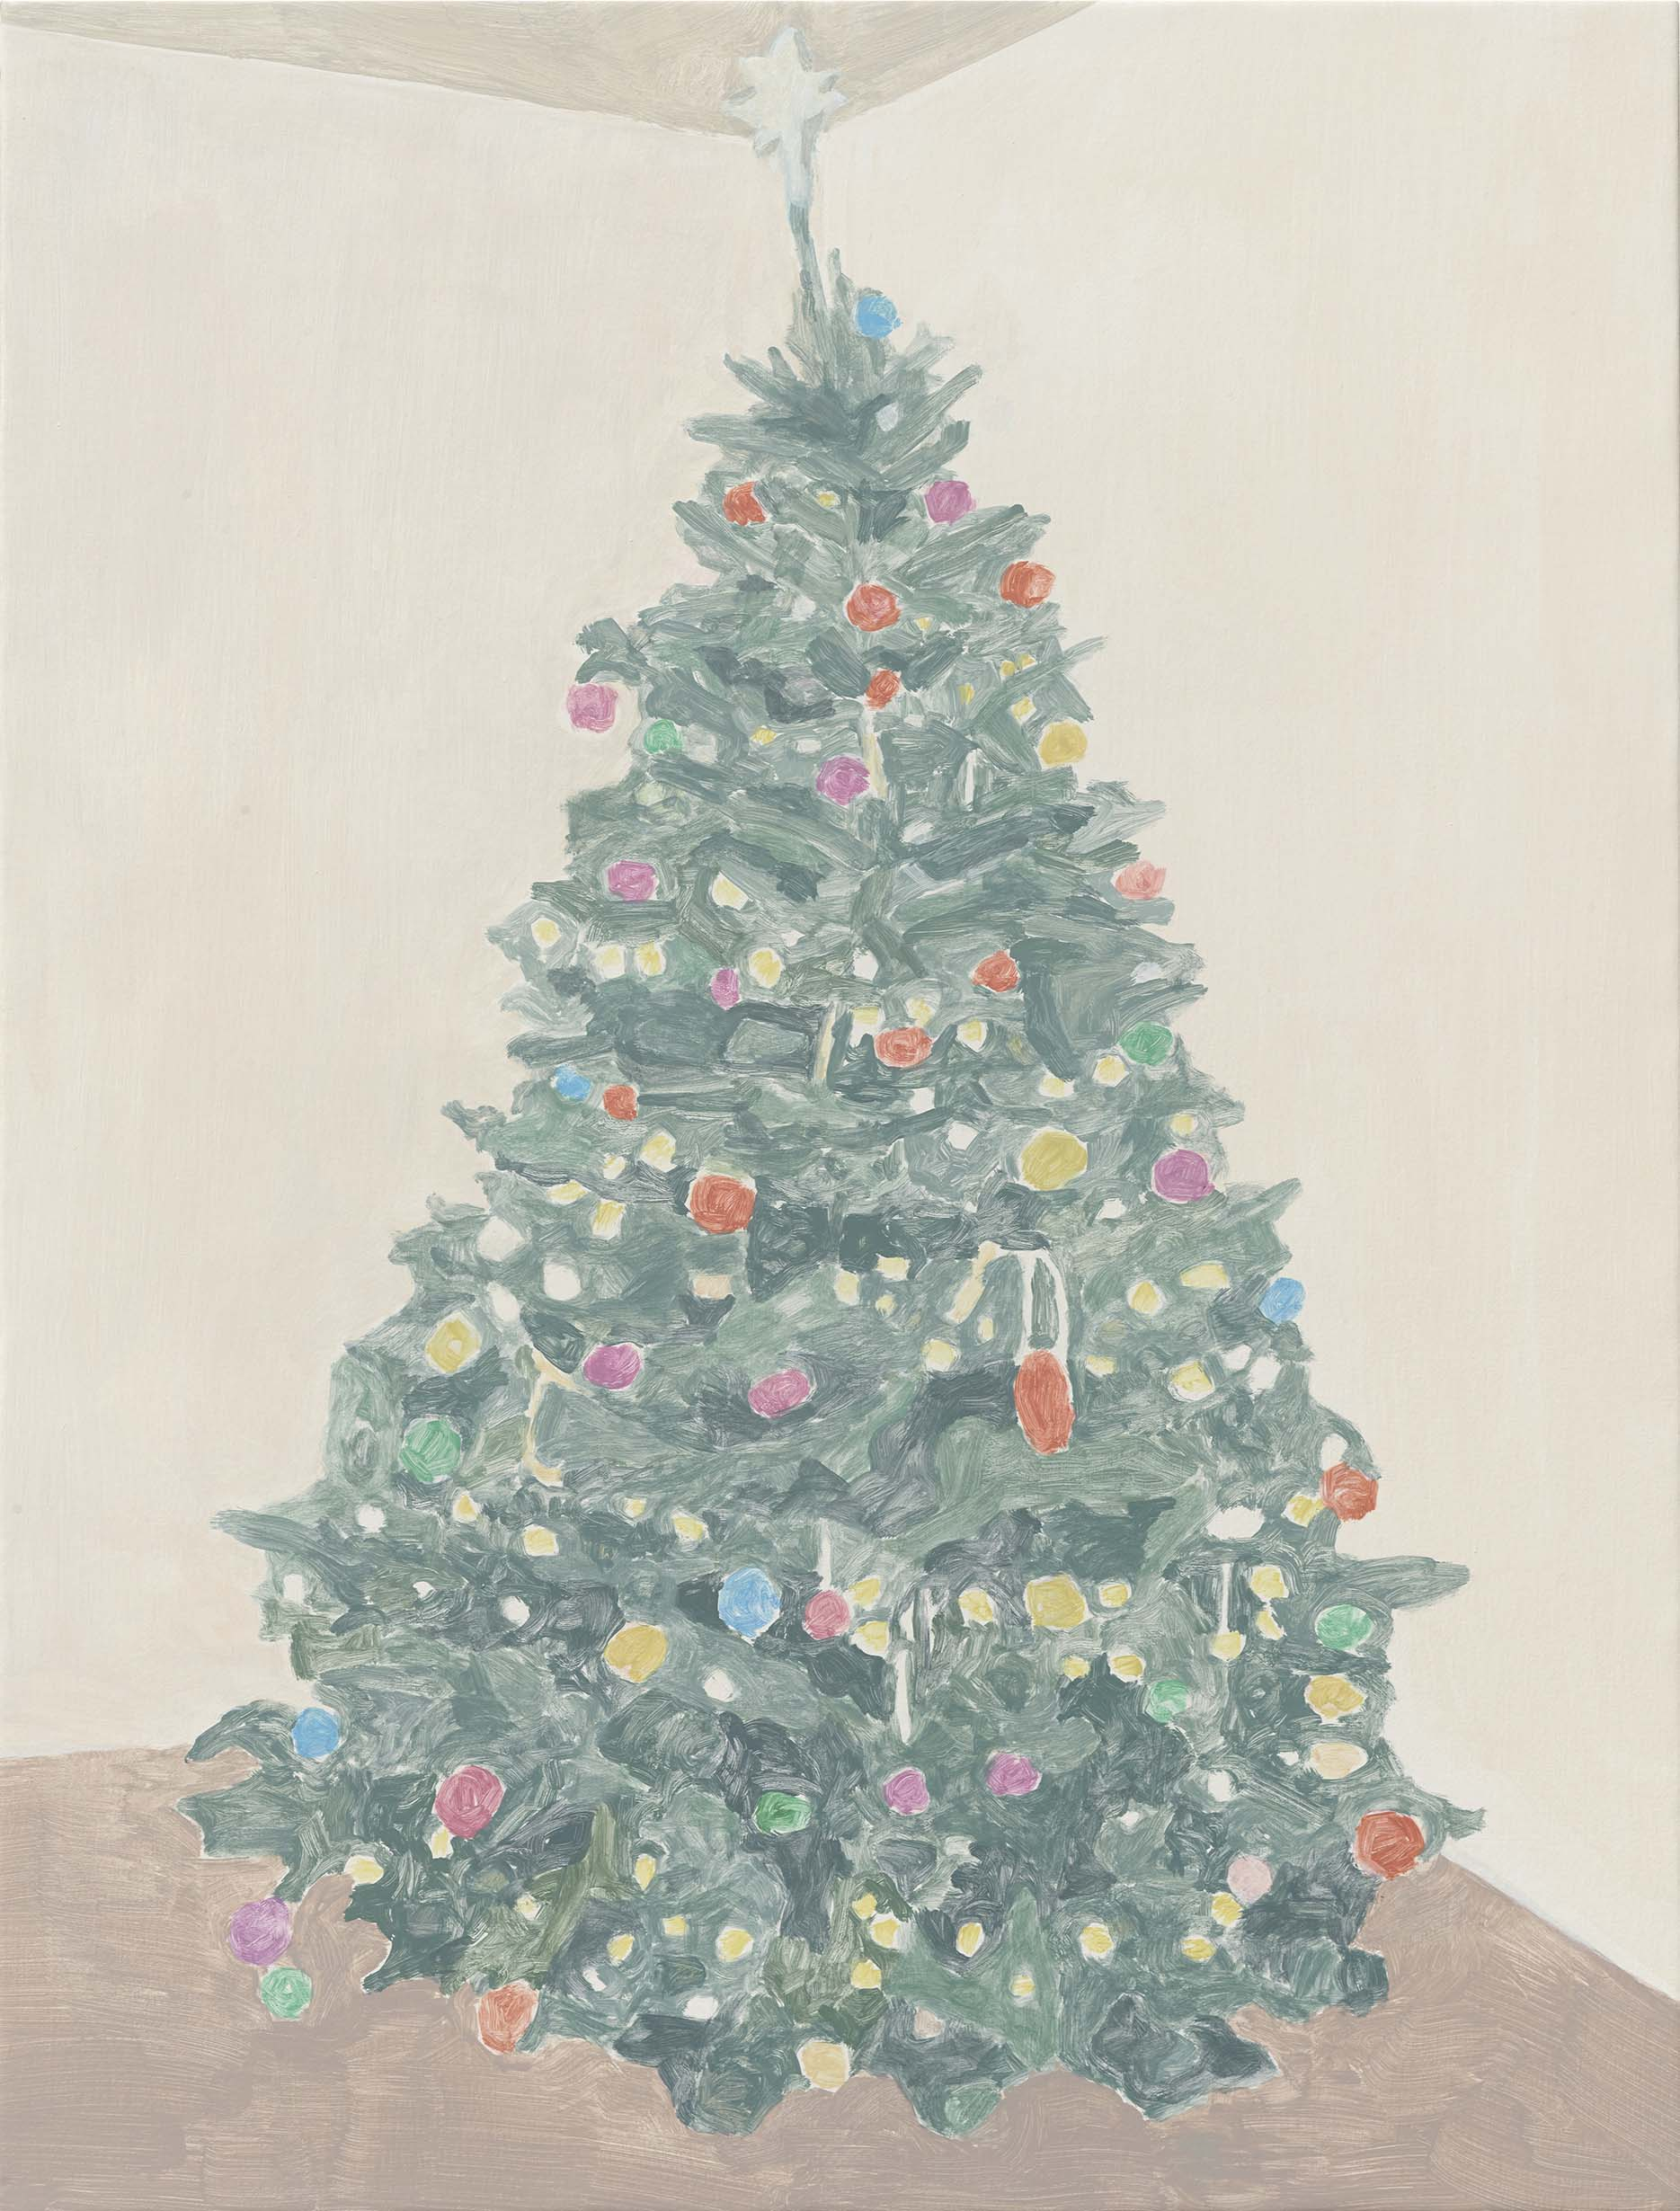 Xmas Tree (baubles and star), acrylic on canvas, 32 x 24.25 inches, 2014.